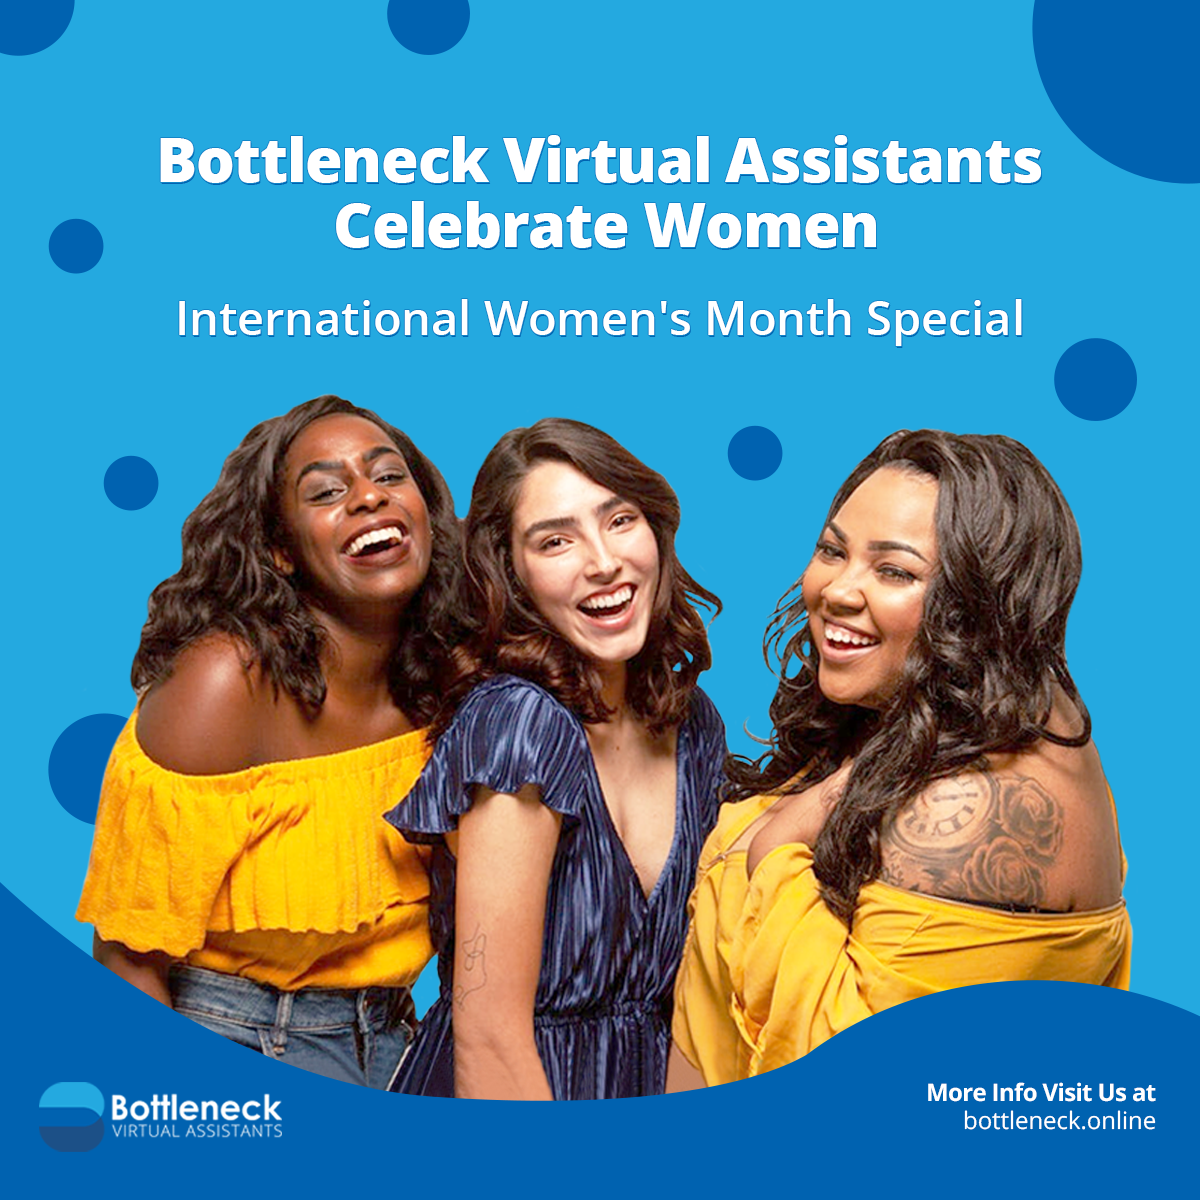 Bottleneck Virtual Assistants Celebrate Women